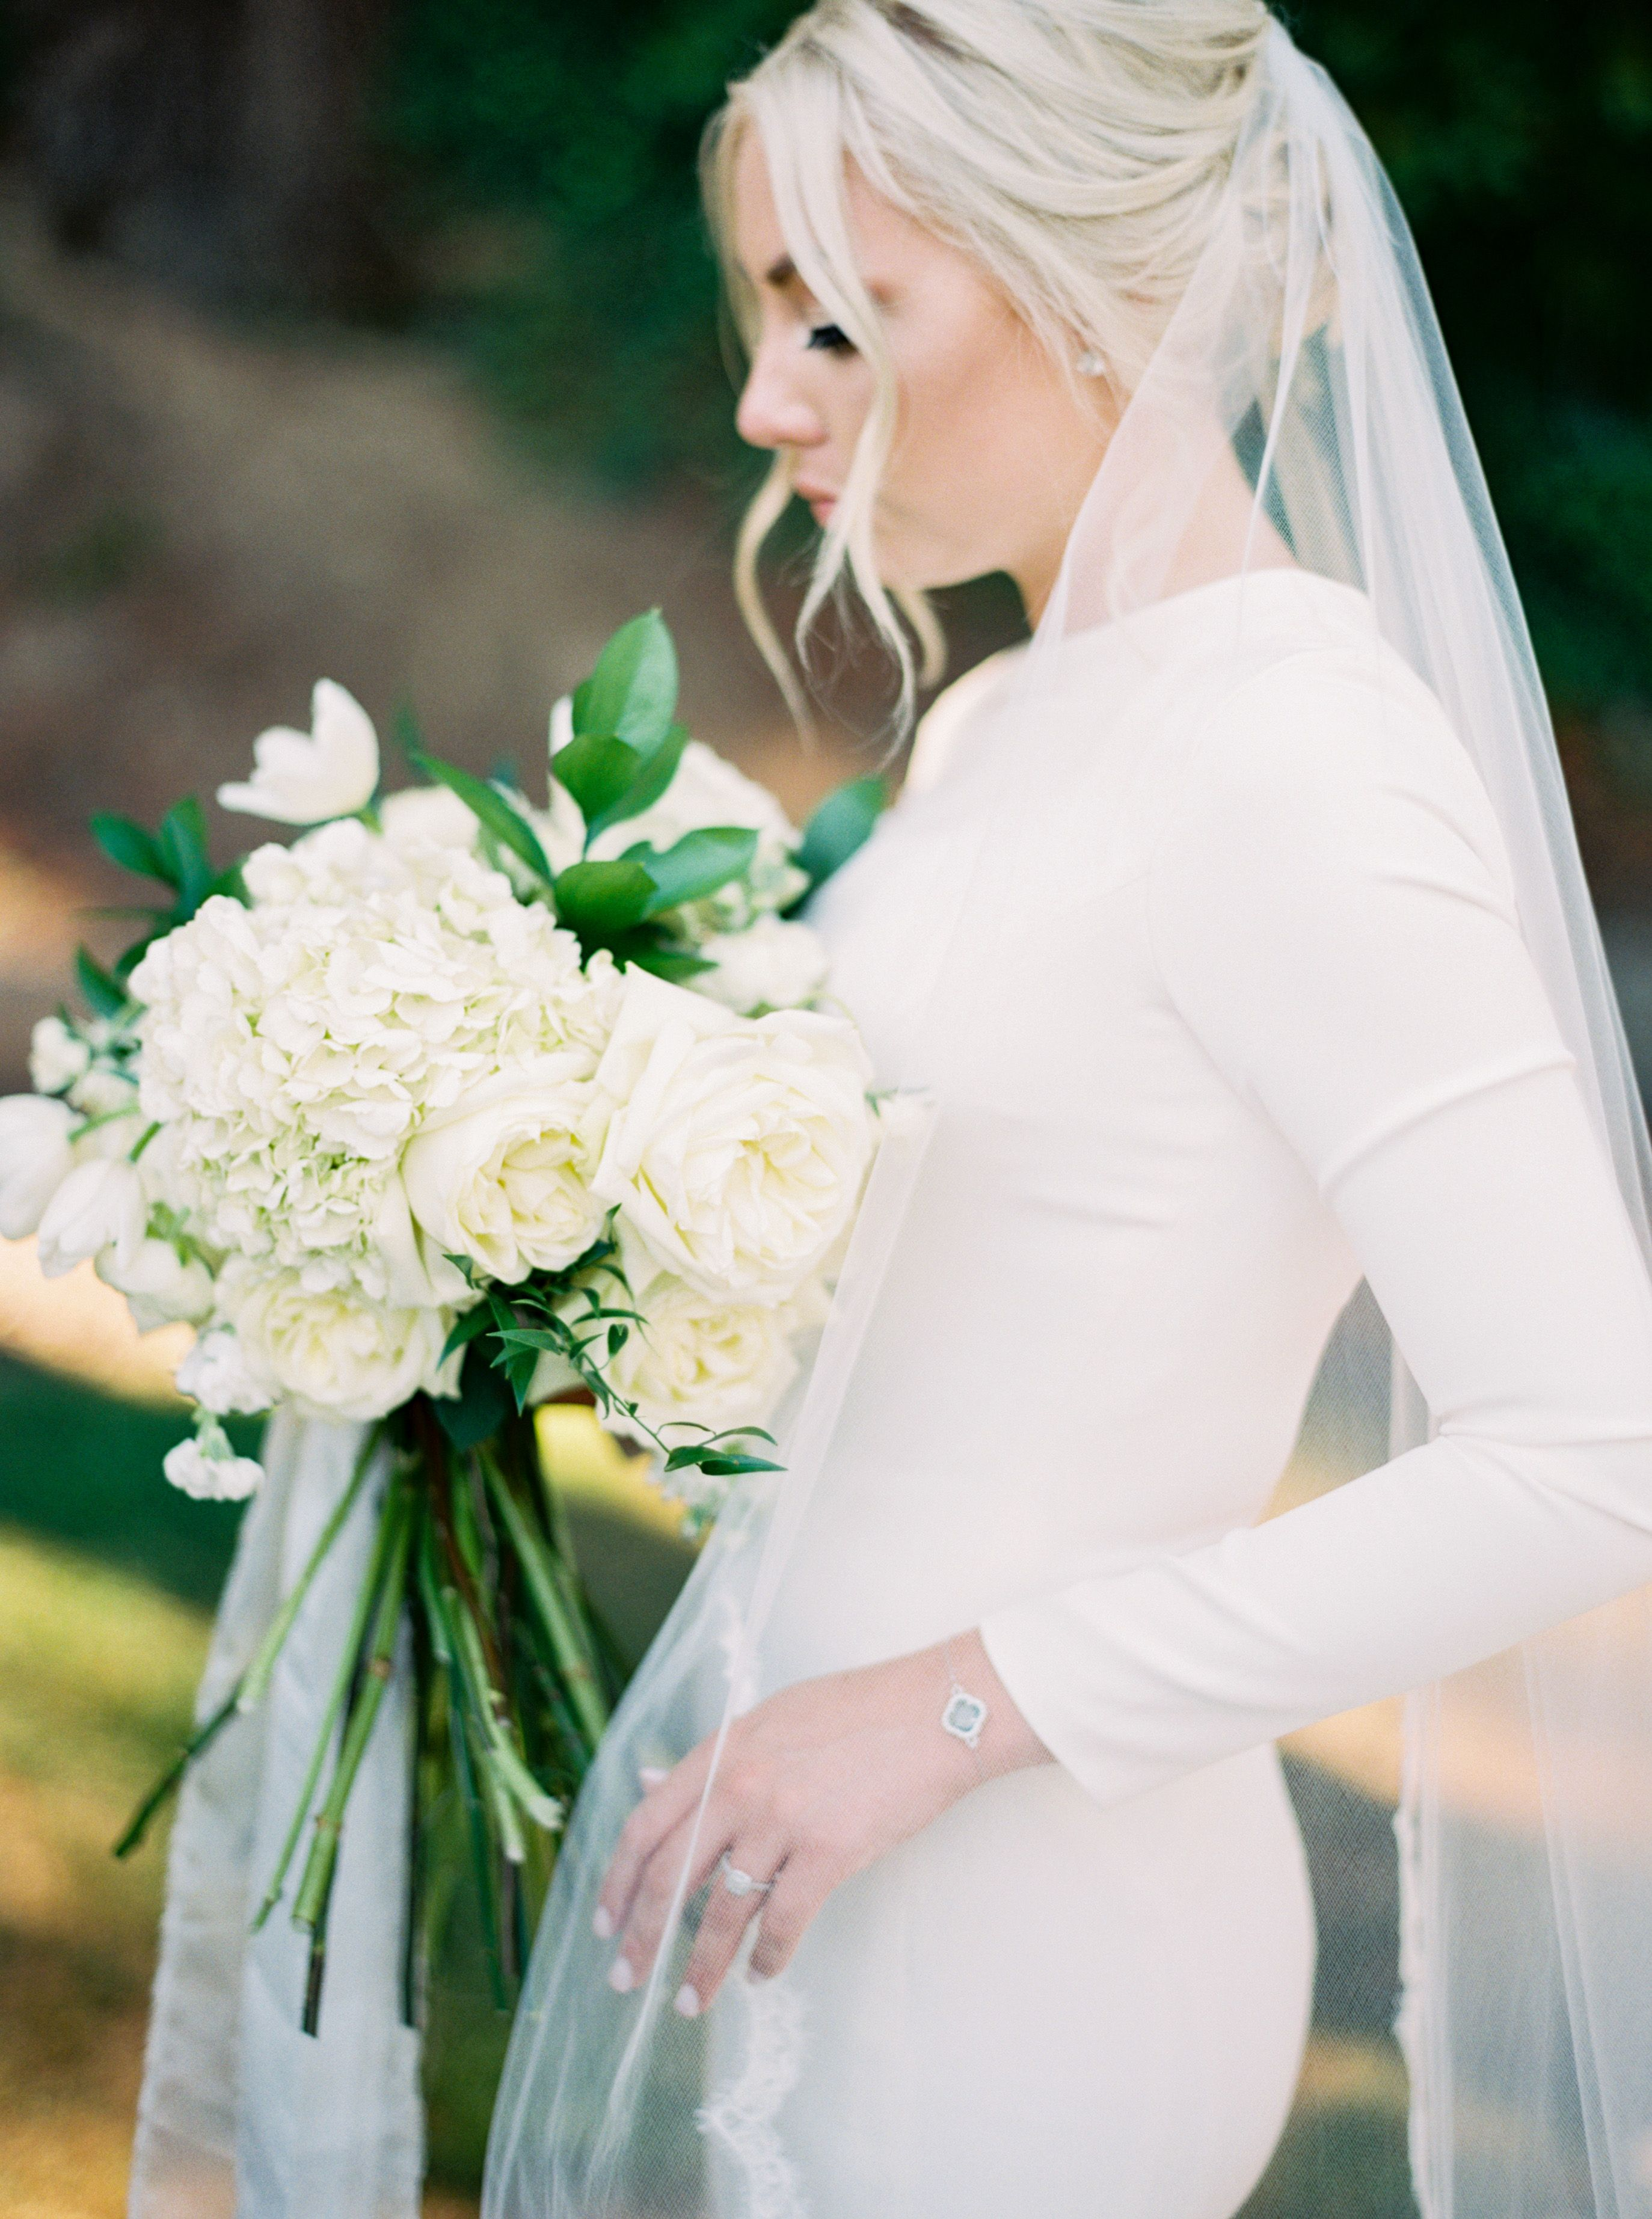 Long sleeve casual wedding dress  Pin by Cassidy Cook on weddings  Pinterest